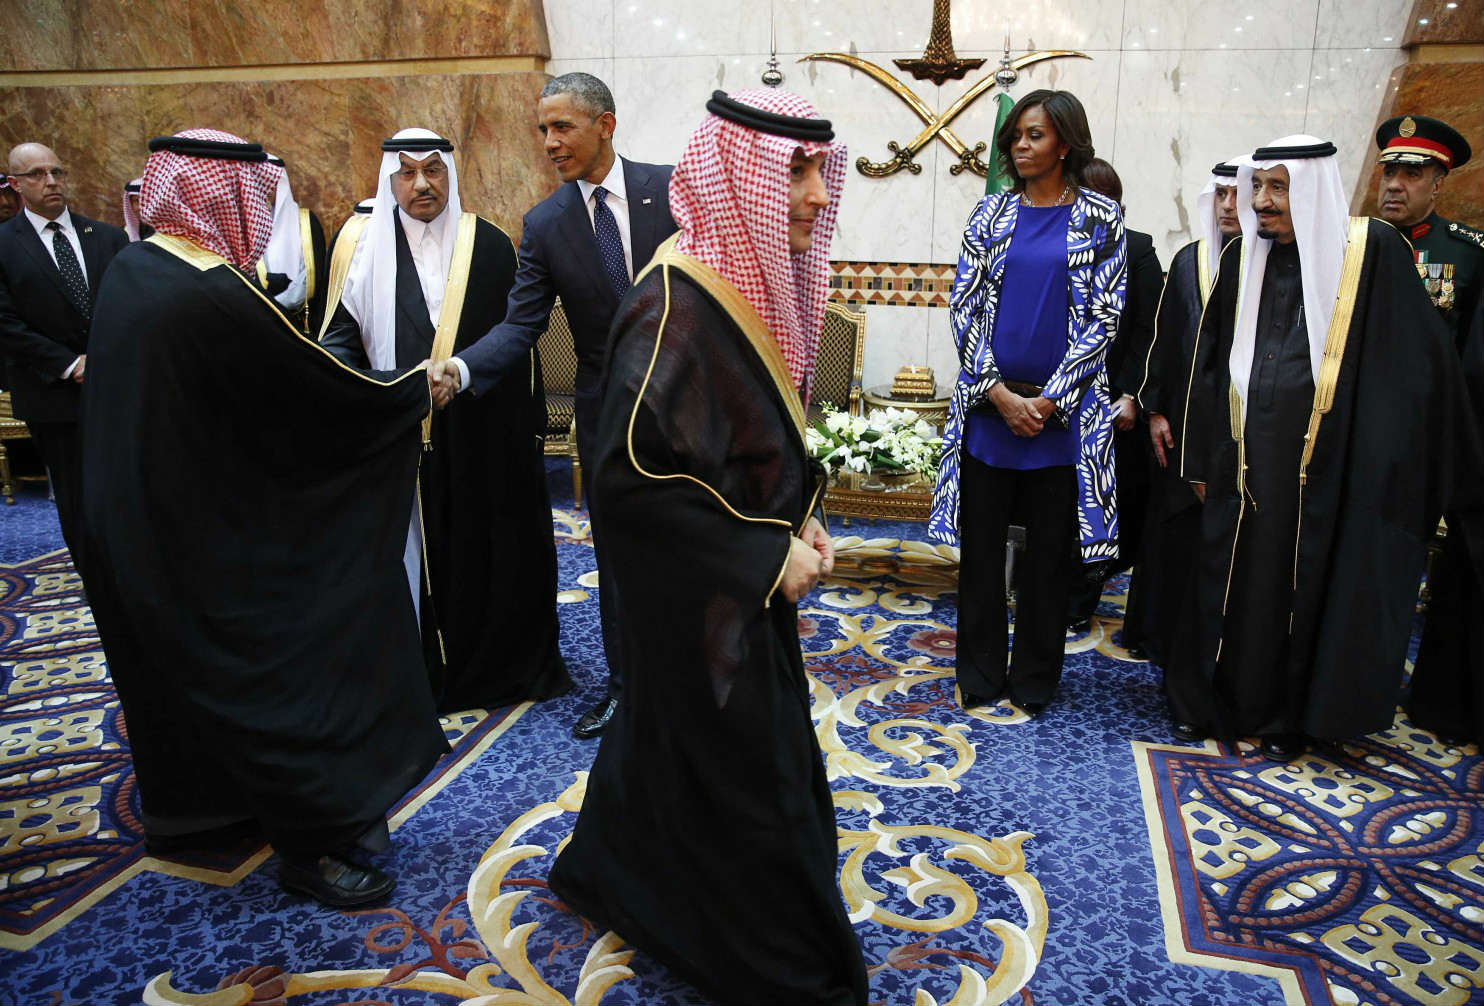 michelle obama no hijab saudi